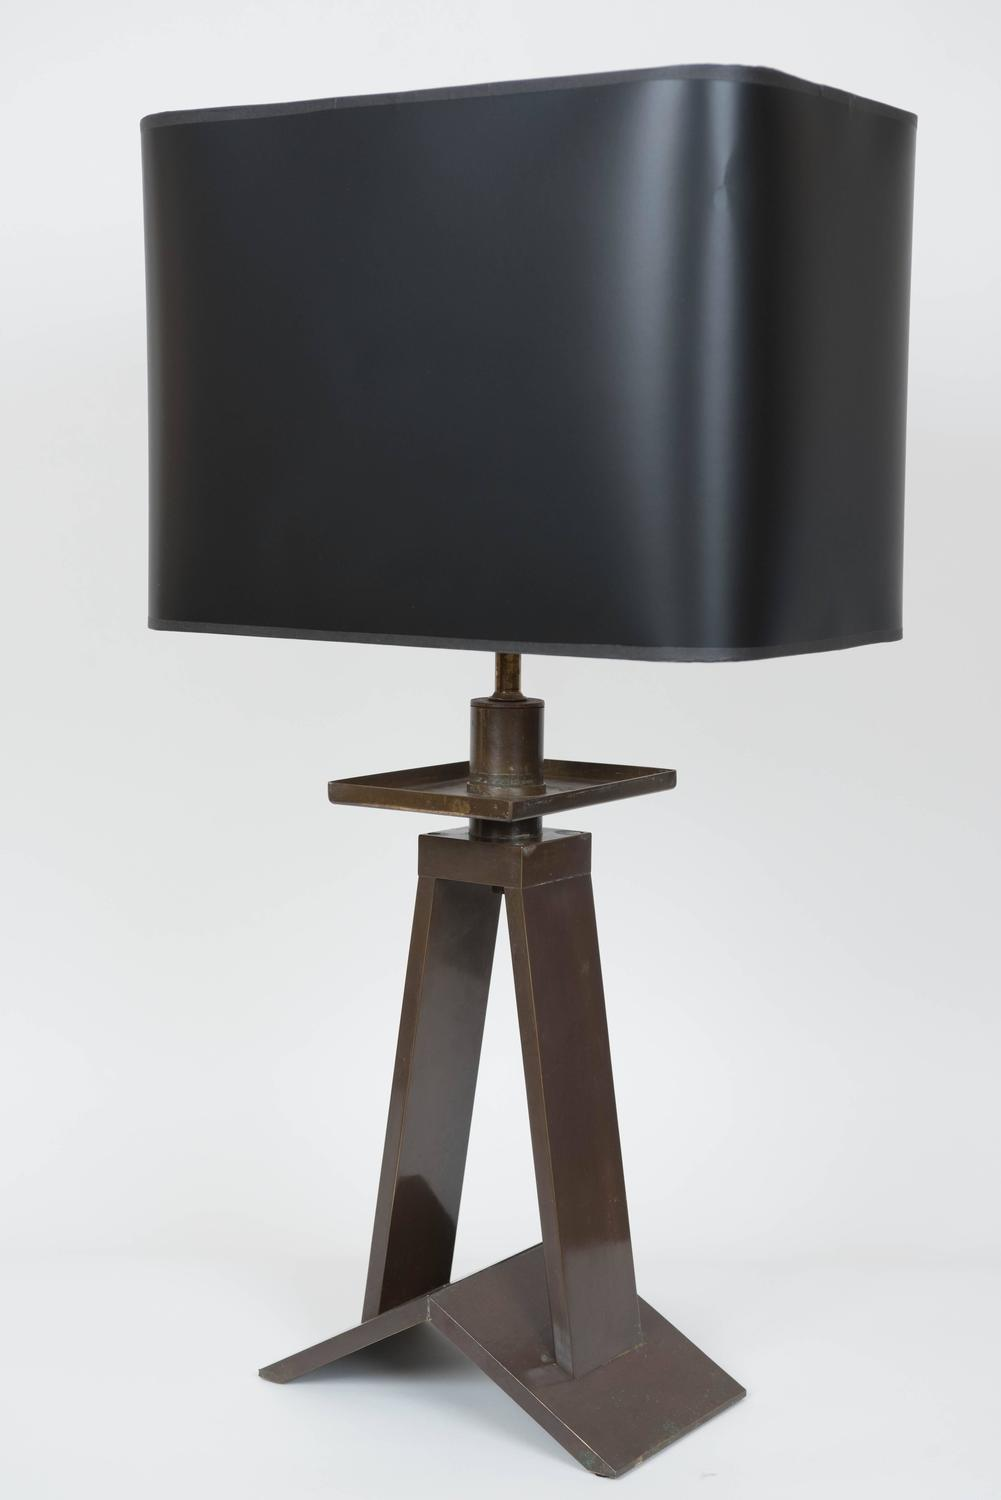 Vintage bronze quotindustrialquot lamp usa circa 1940 at 1stdibs for Chair table lamp yonge st